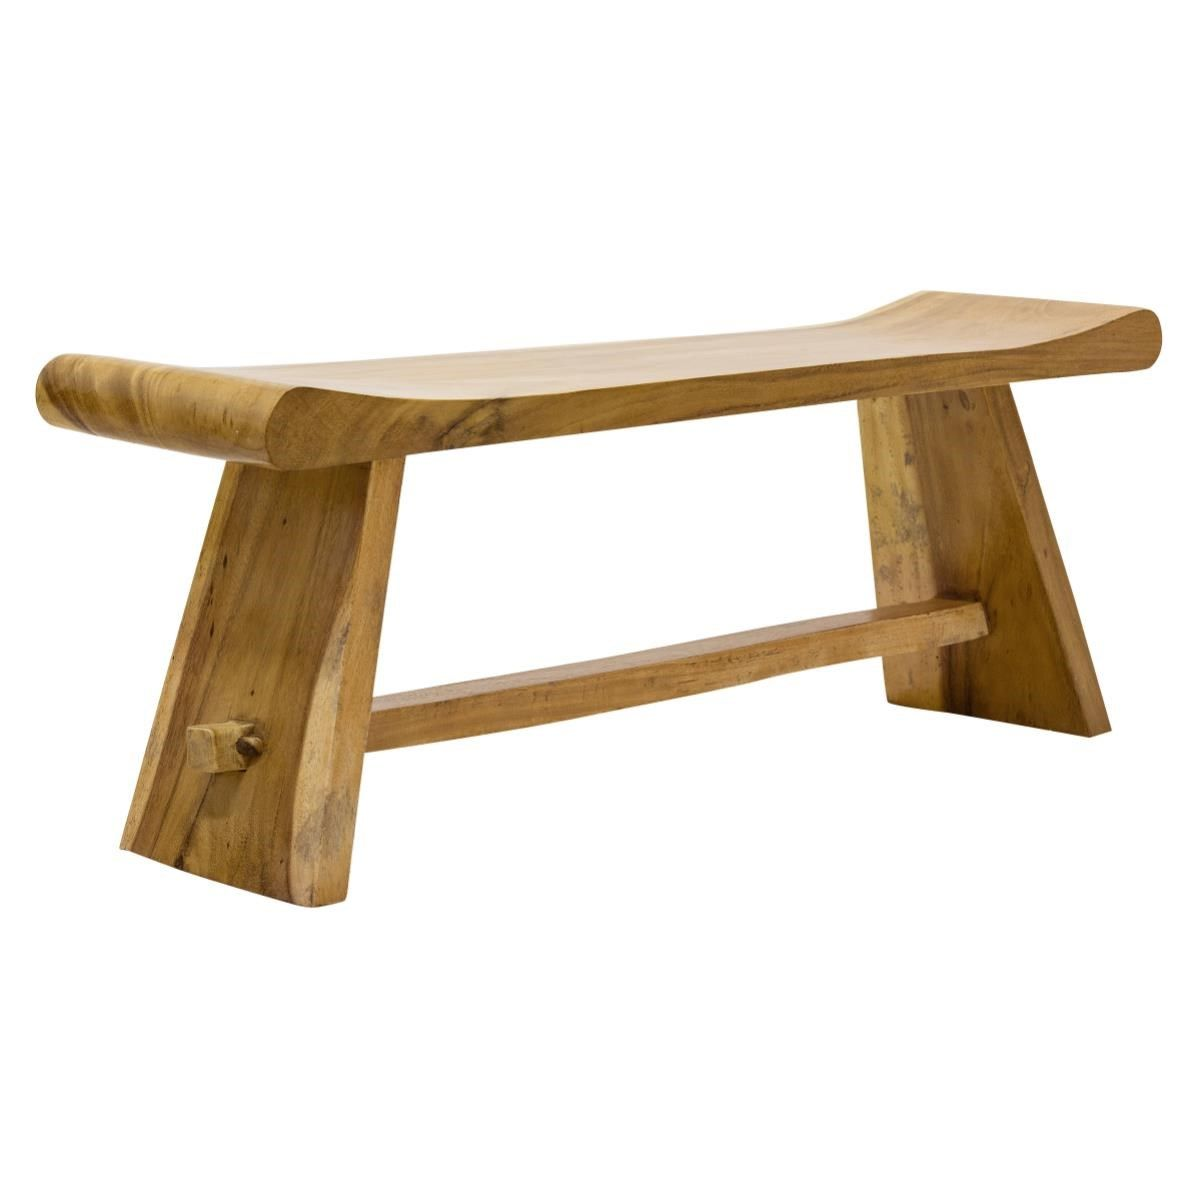 Surin Zen Bench | Monkey pod wood, Occasional chairs and Japanese style